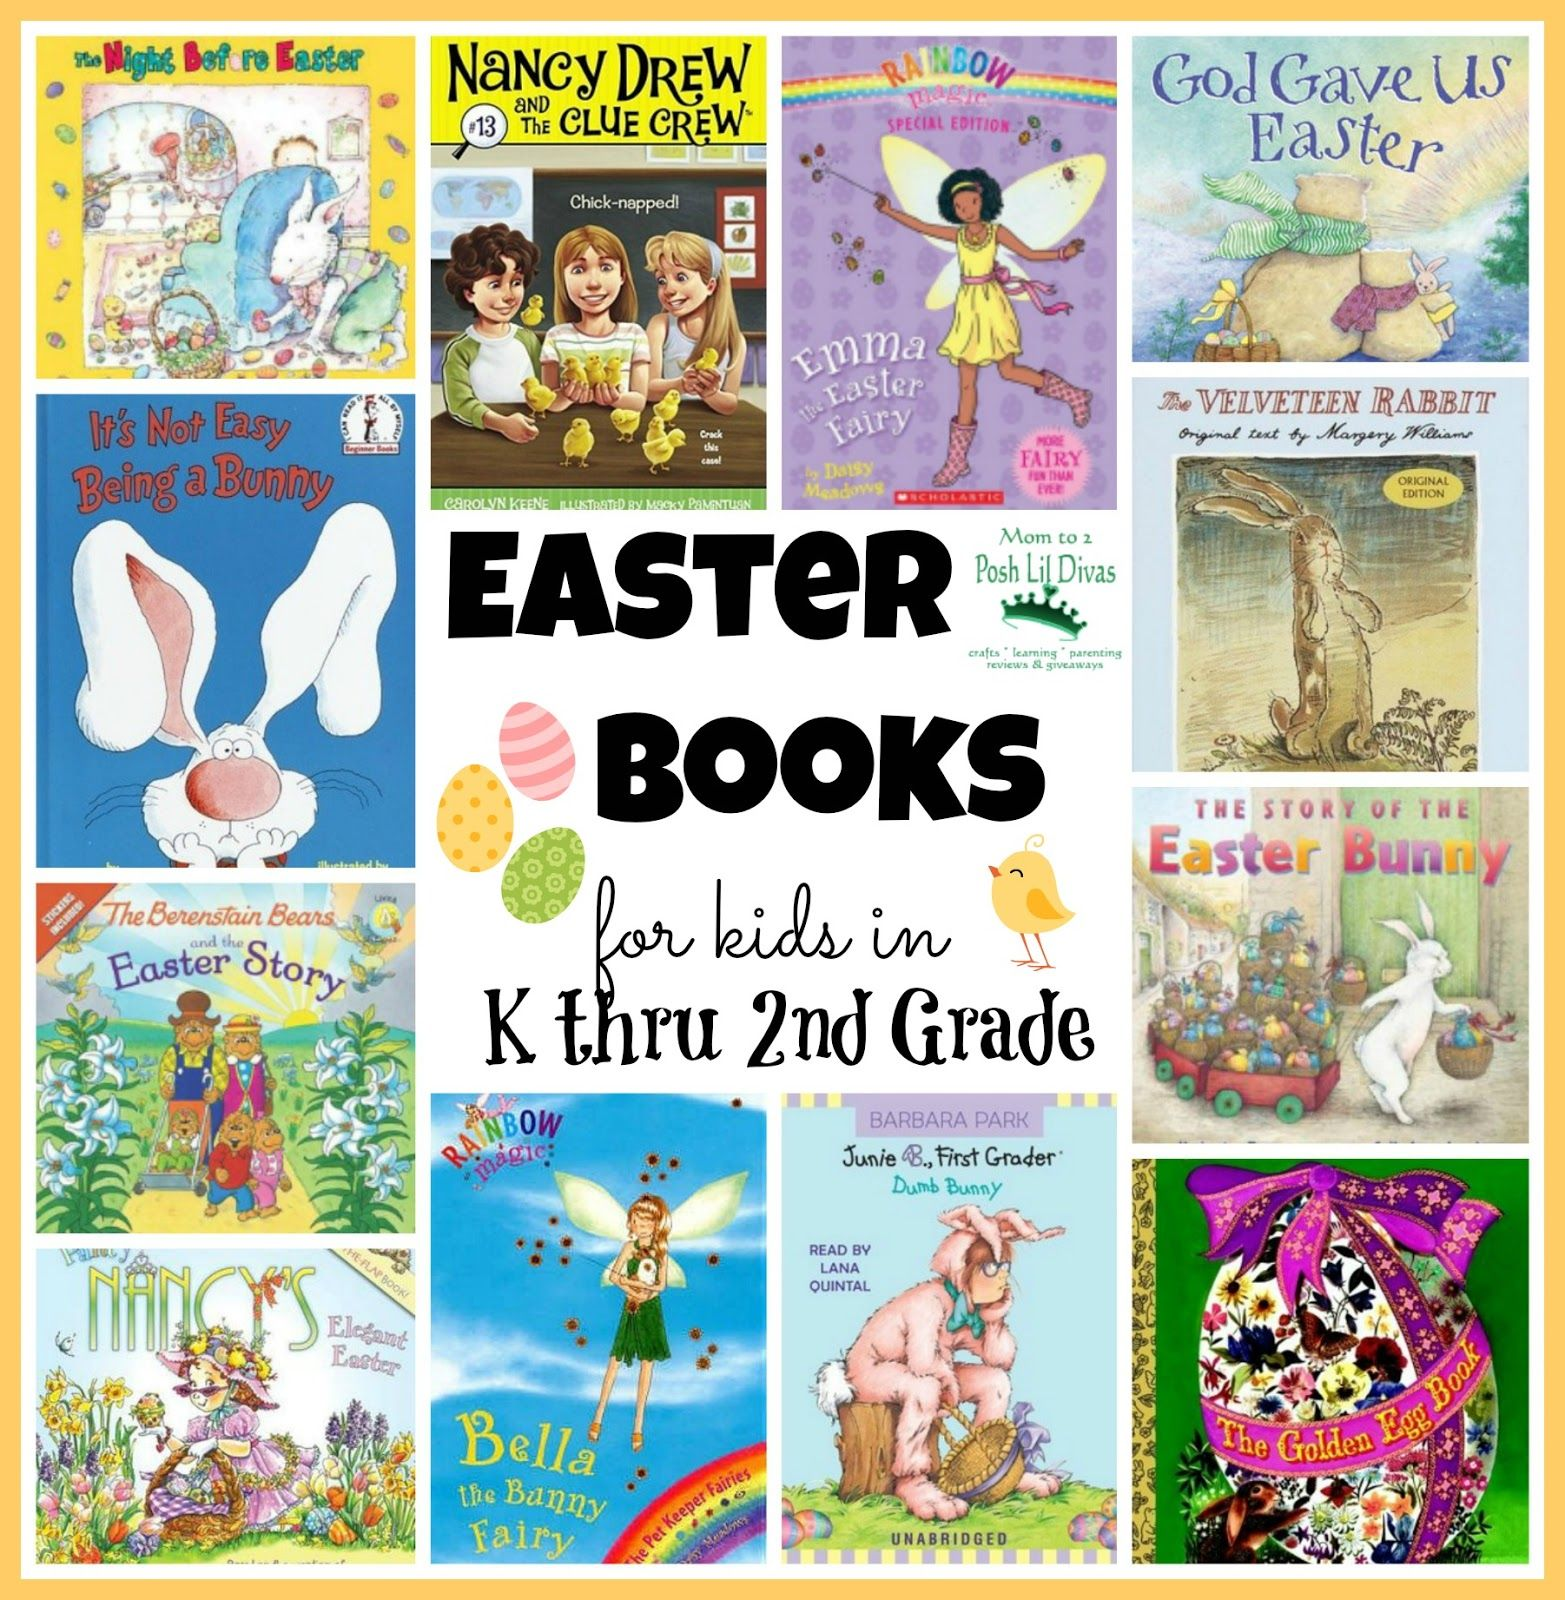 Easter Books For Kids In K Thru 2nd Grade From Mom To 2